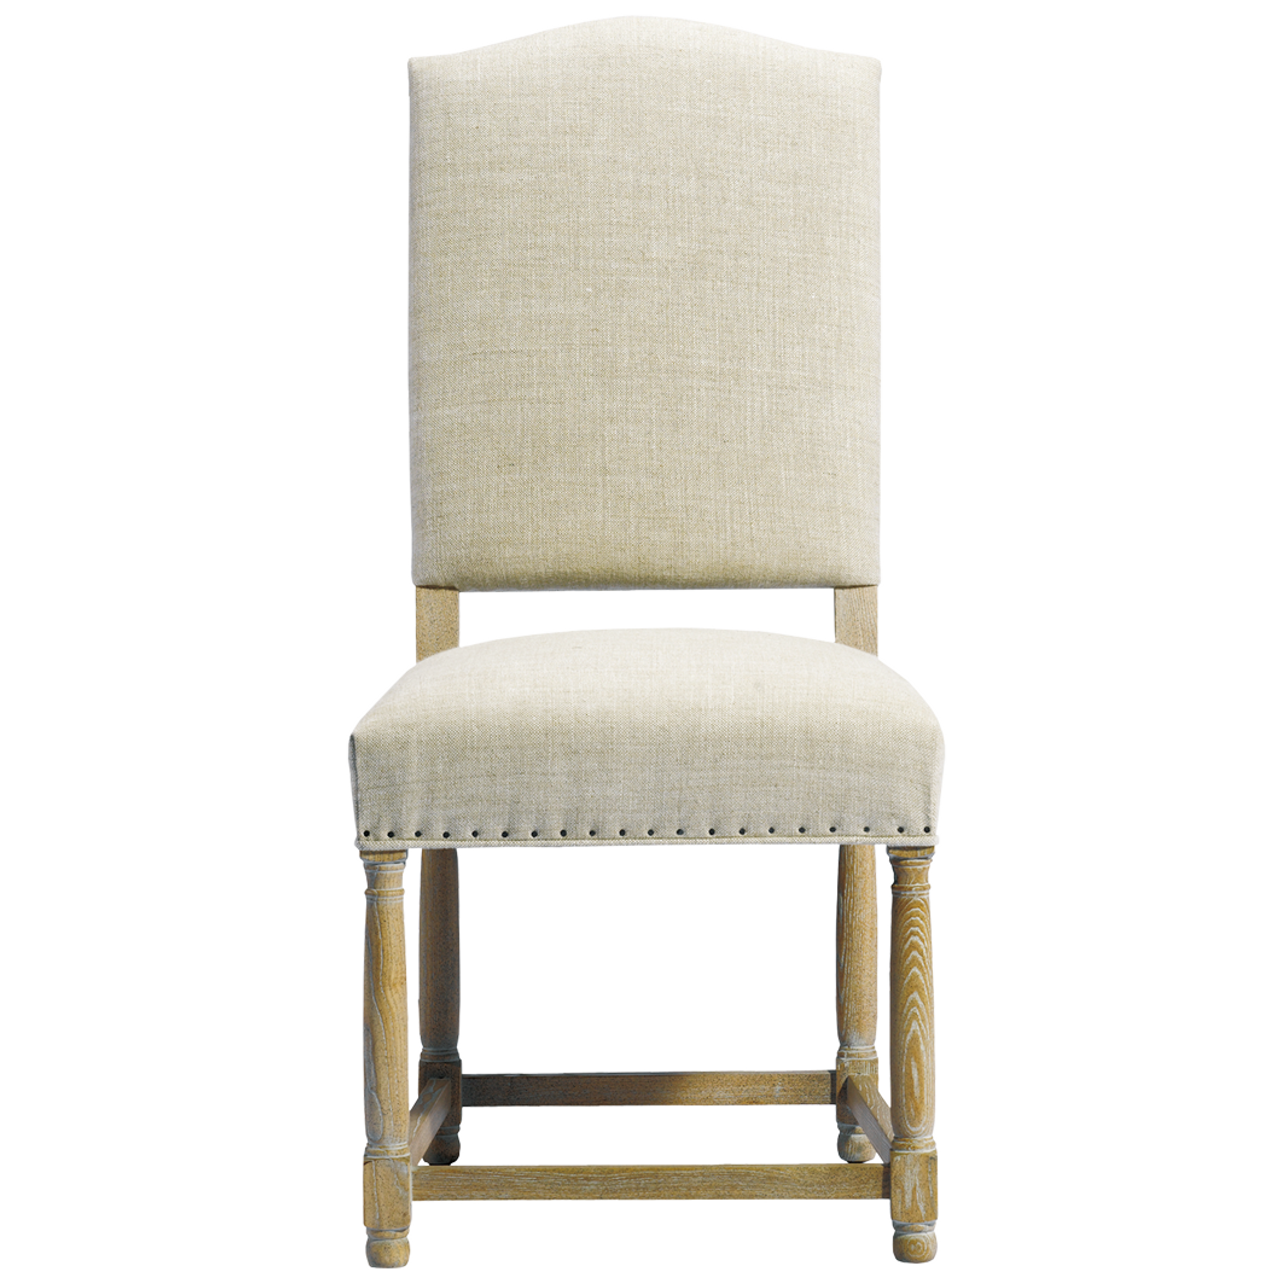 Camelback Upholstered Dining Chair on uttermost furniture, broyhill furniture, zuo modern furniture, jofran furniture,